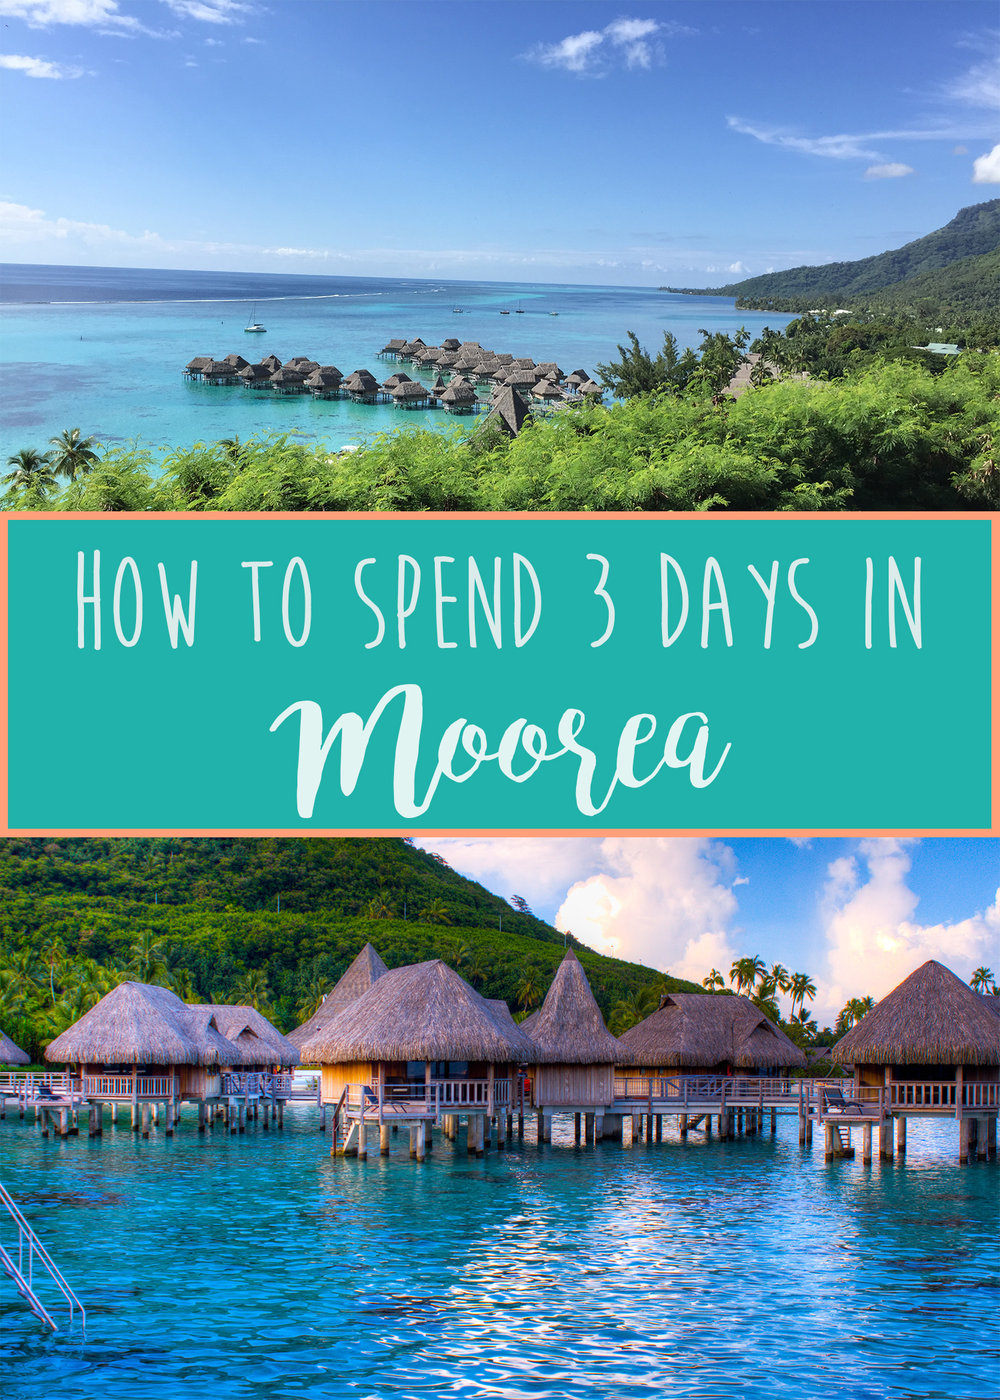 How to Spend the 3 Days in Moorea - Wandering Jokas Travel Blog